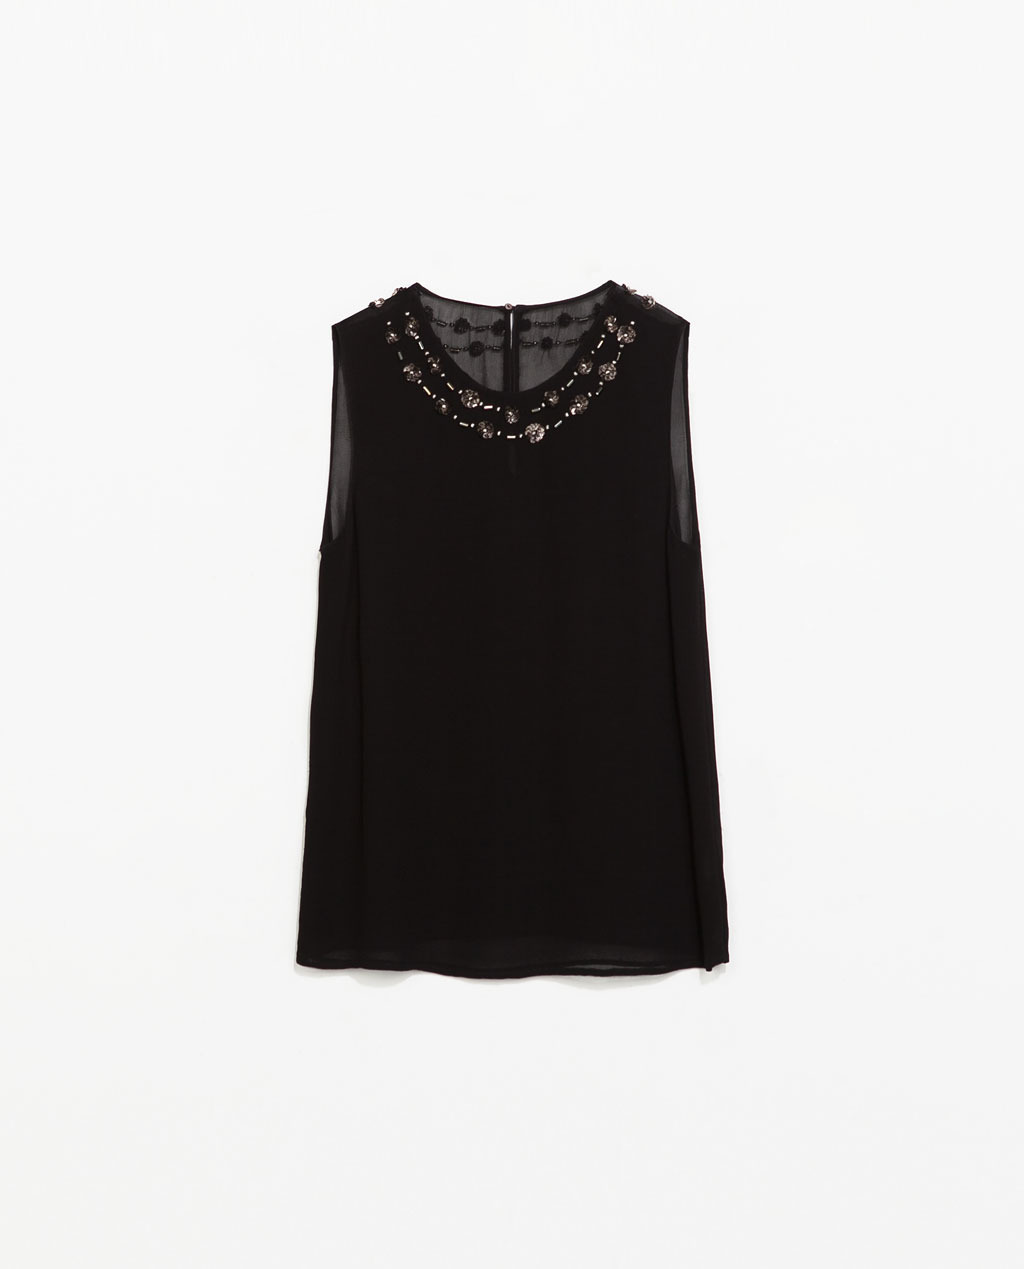 Top With Neck Applique - neckline: round neck; pattern: plain; sleeve style: sleeveless; bust detail: added detail/embellishment at bust; predominant colour: black; occasions: evening, work, occasion, creative work; length: standard; style: top; fibres: viscose/rayon - 100%; fit: straight cut; sleeve length: sleeveless; texture group: sheer fabrics/chiffon/organza etc.; pattern type: fabric; embellishment: beading; trends: summer sparkle; season: s/s 2014